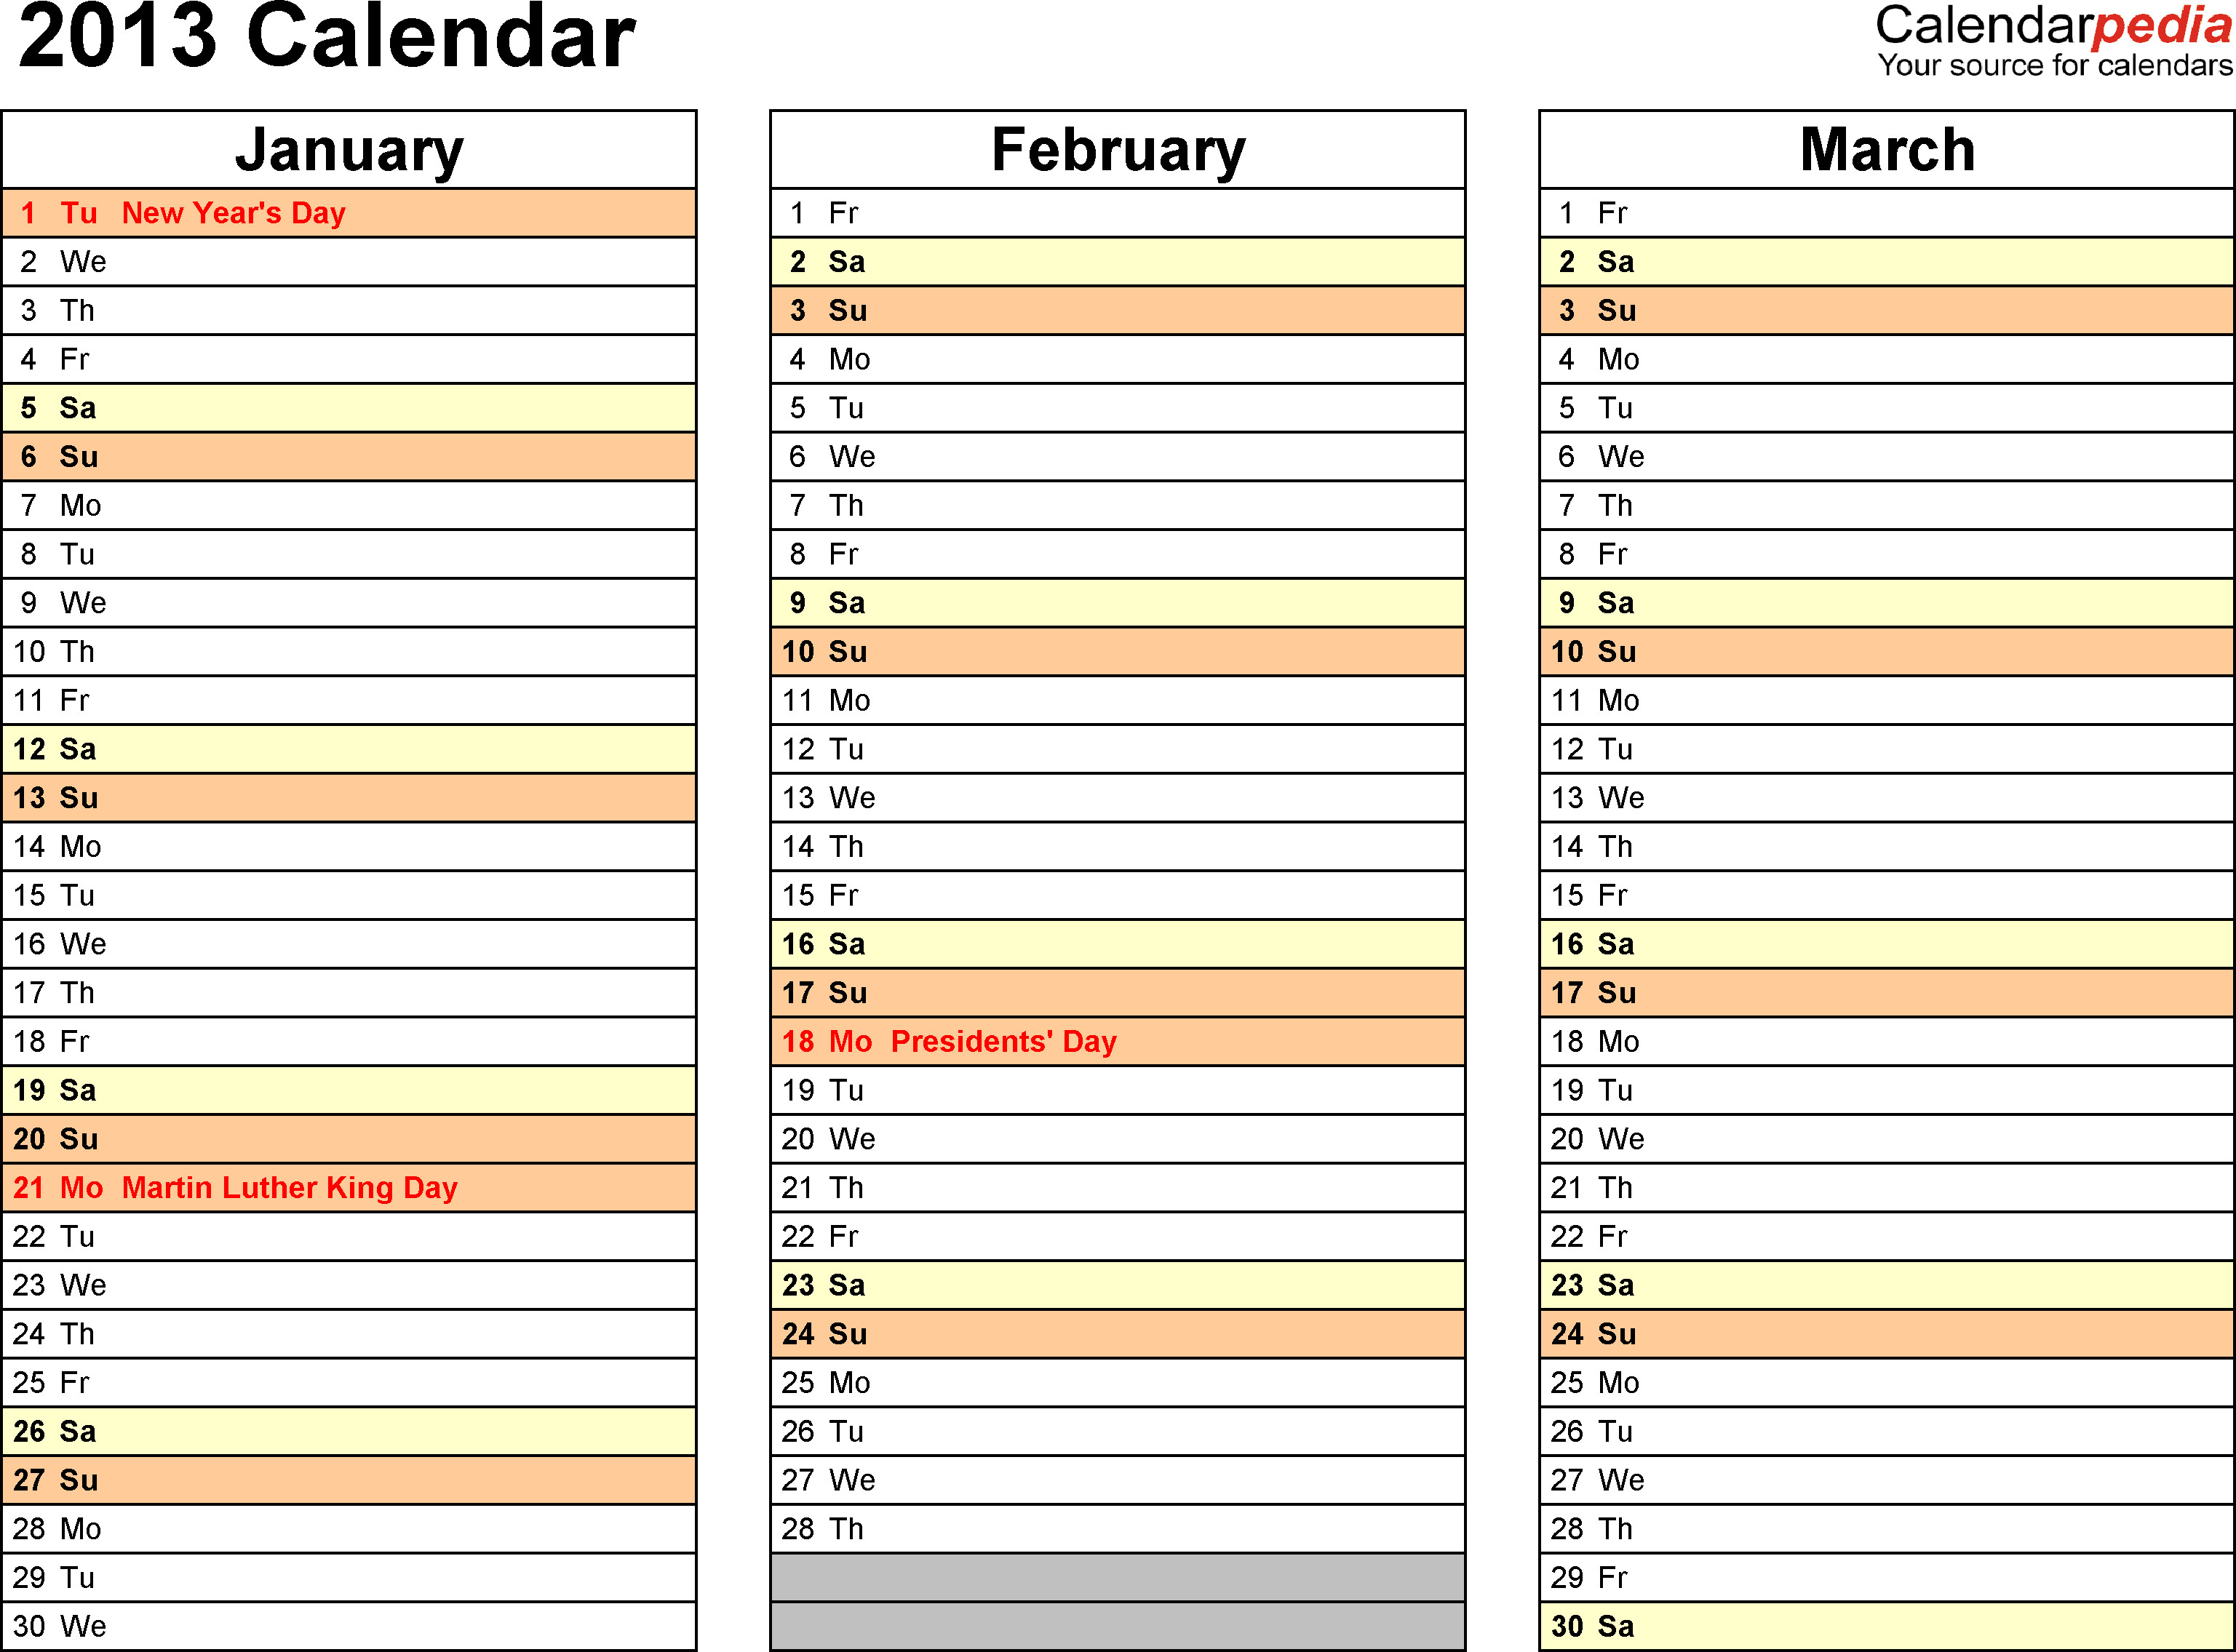 Calendar Template for Word Free Calendar Template 2013